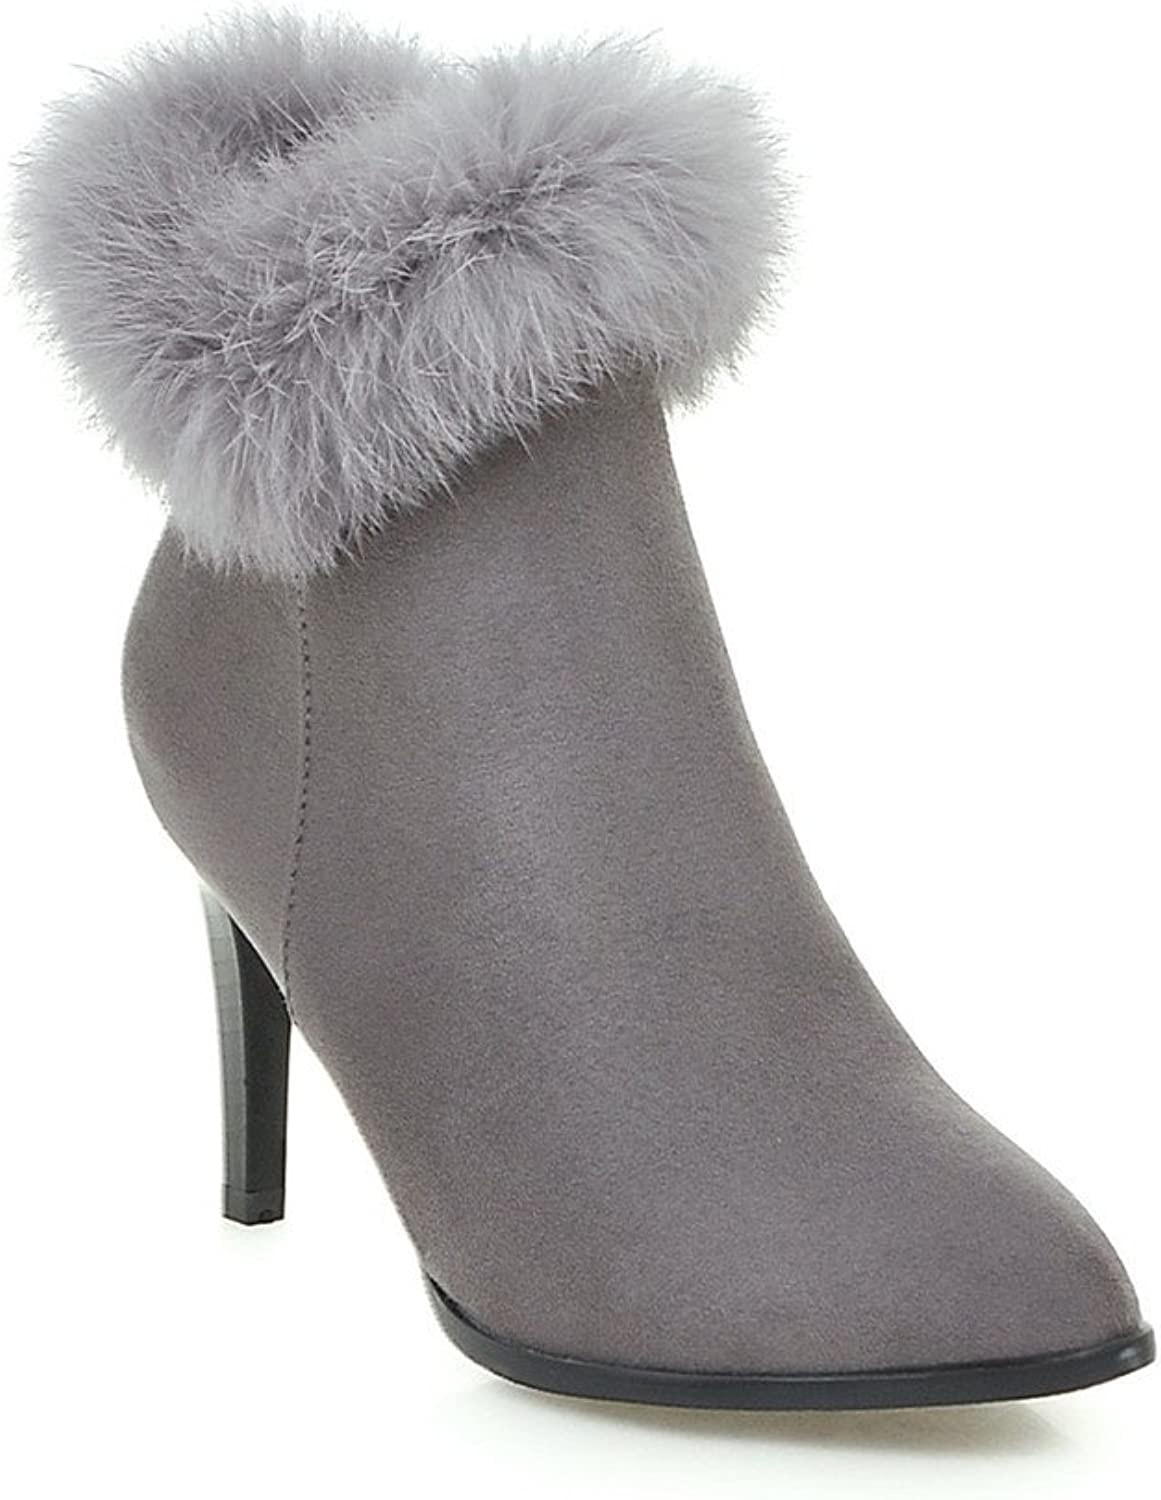 Lucksender Womens Pointed Toe Side Zip Frosted Short Plush Thin High Heel Boots